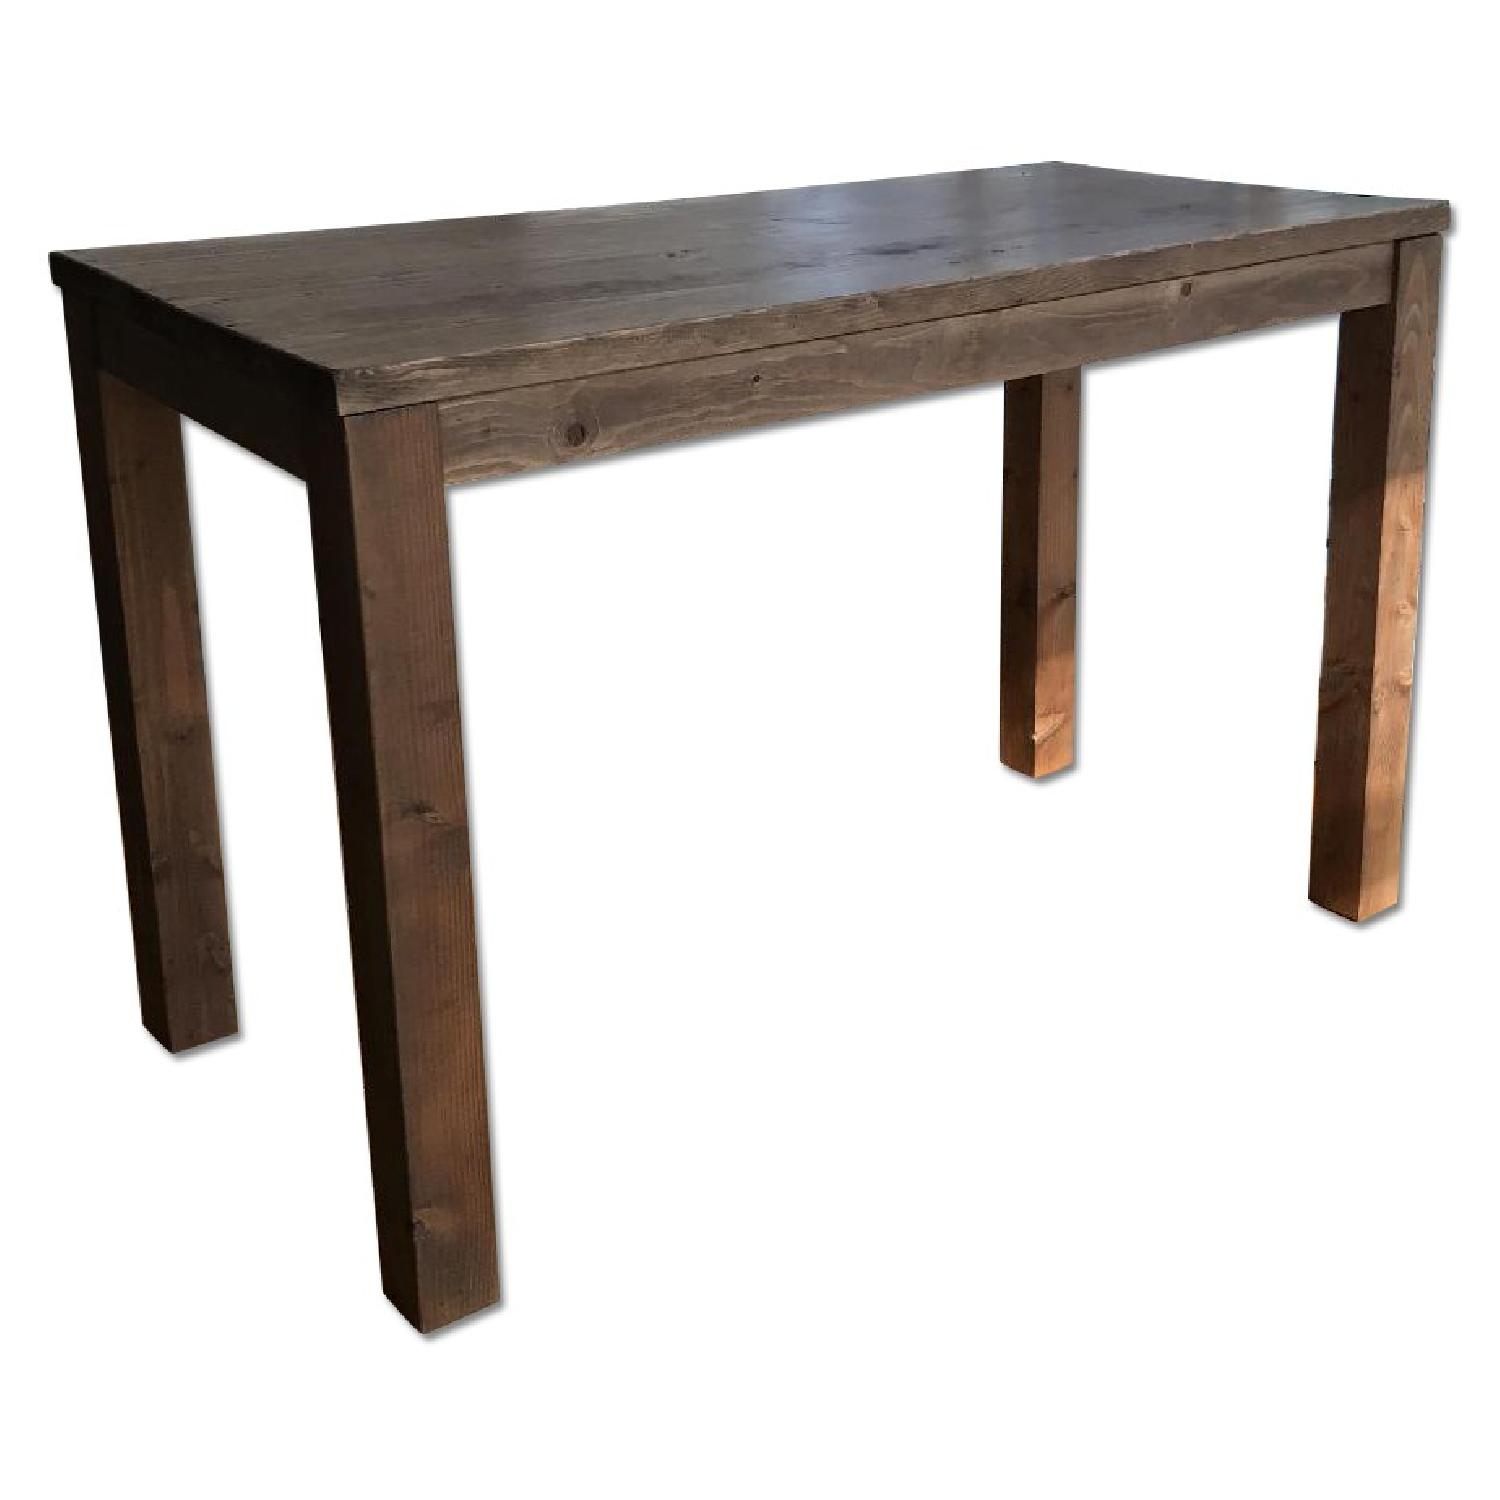 Counter Height Table/Kitchen Island in Reclaimed Wood